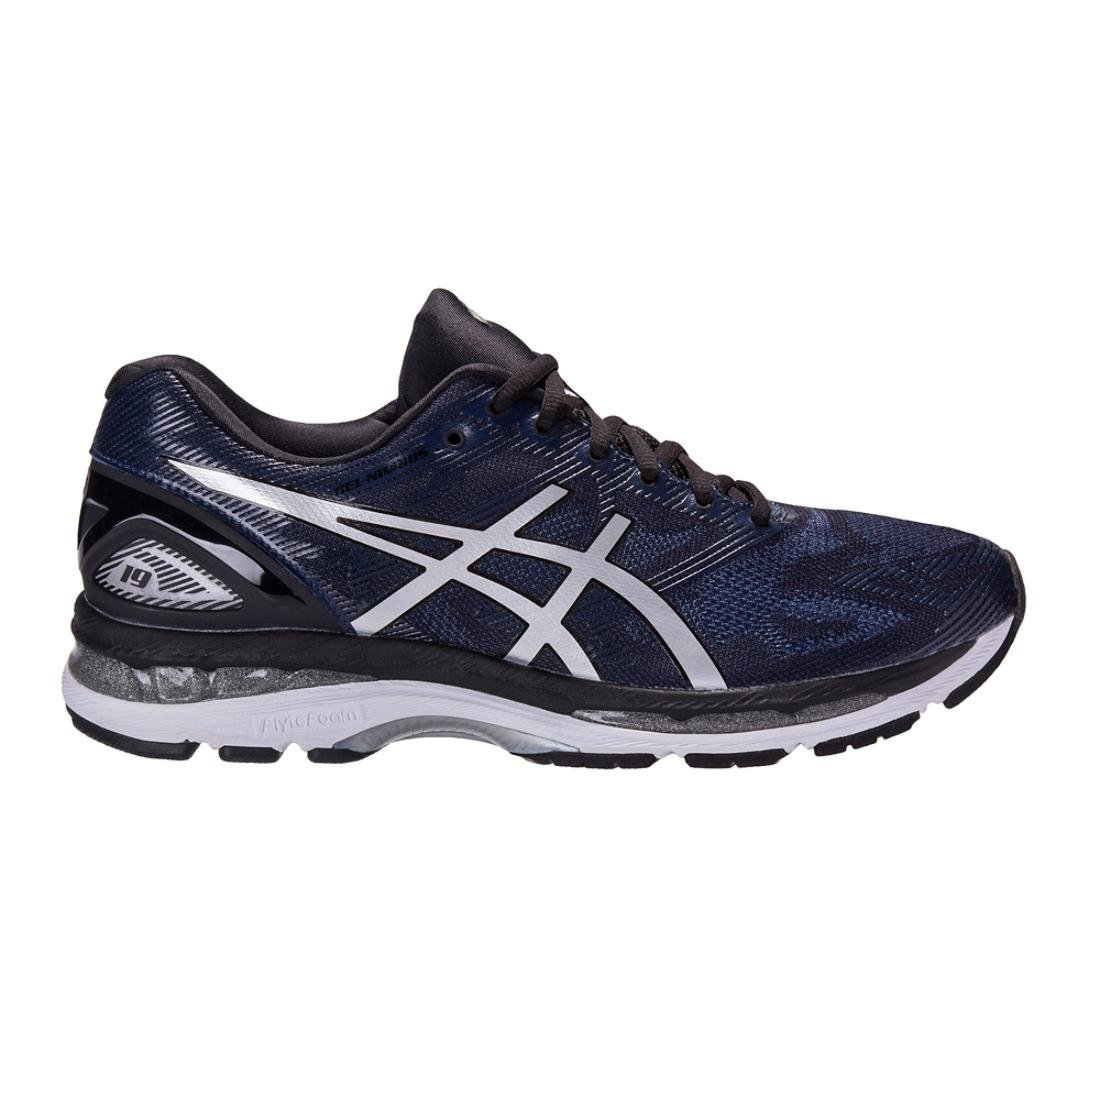 ASICS Men's Gel-Nimbus 19 Running Shoe Peacoat/Silver/Black, 12 D(M) US